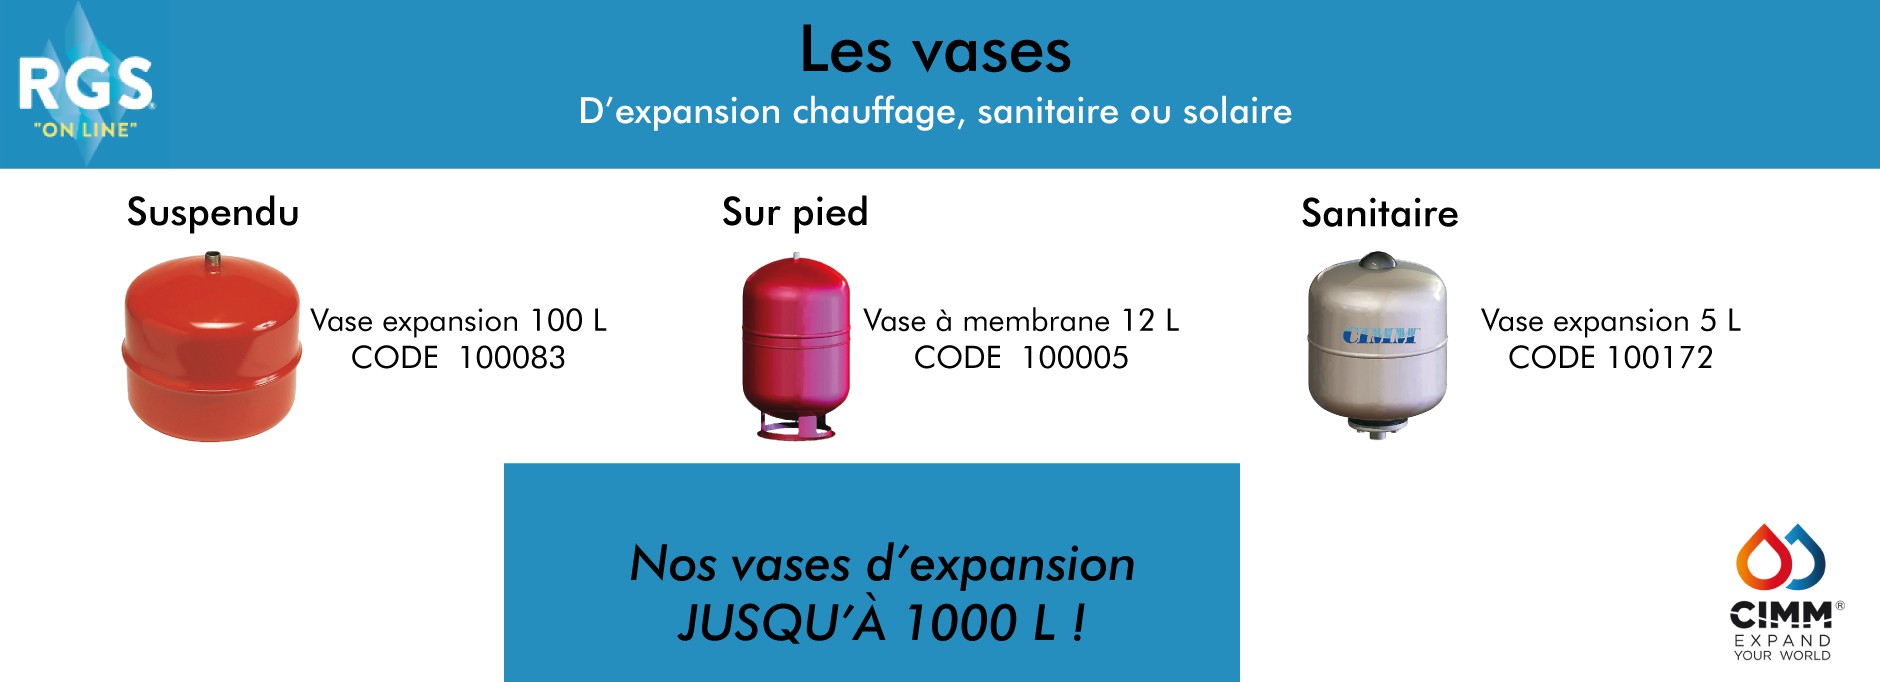 Vases d'expansion